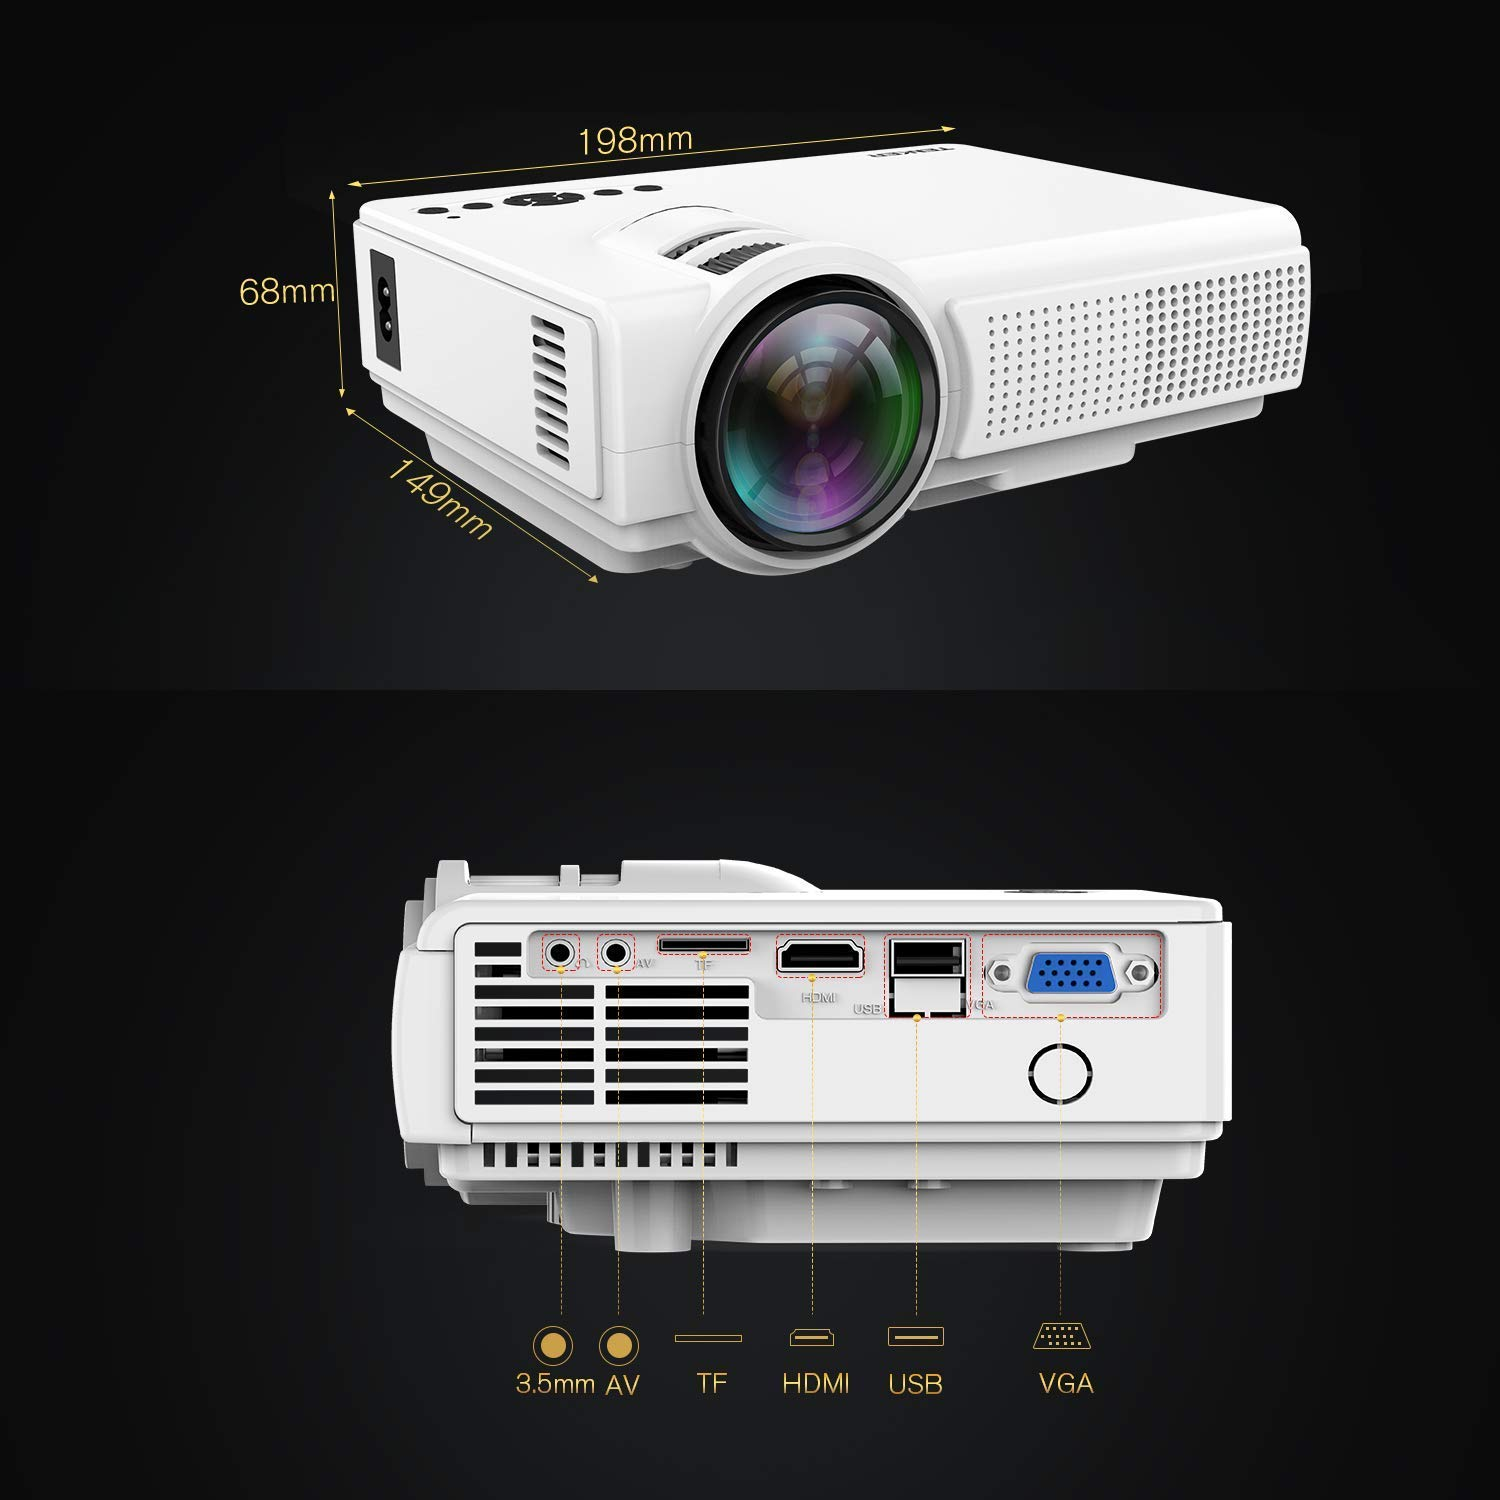 TENKER Upgrade Lumens Q5 Mini Projector, with Big Display LED Full HD Video Projector, Compatible with 1080p HDMI, Fire TV Stick, VGA, USB, AV for Home Theater Entertainment, Party and Games (White) by TENKER (Image #8)